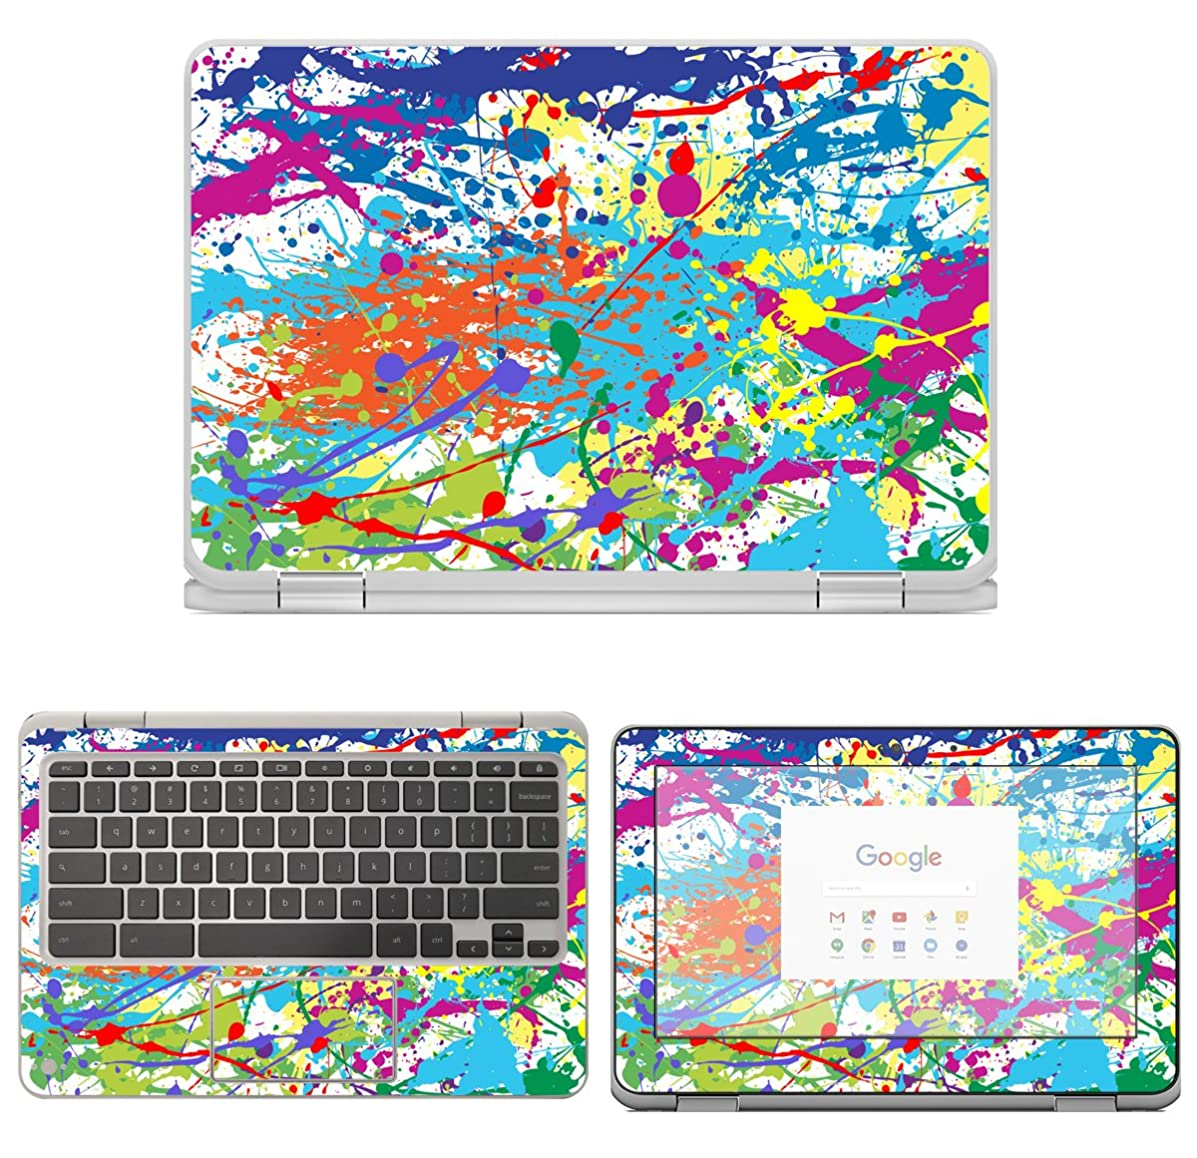 decalrus - Protective Decal Paint Splatter Skin Sticker for HP ChromeBook X360 11-AE030NR (11.6